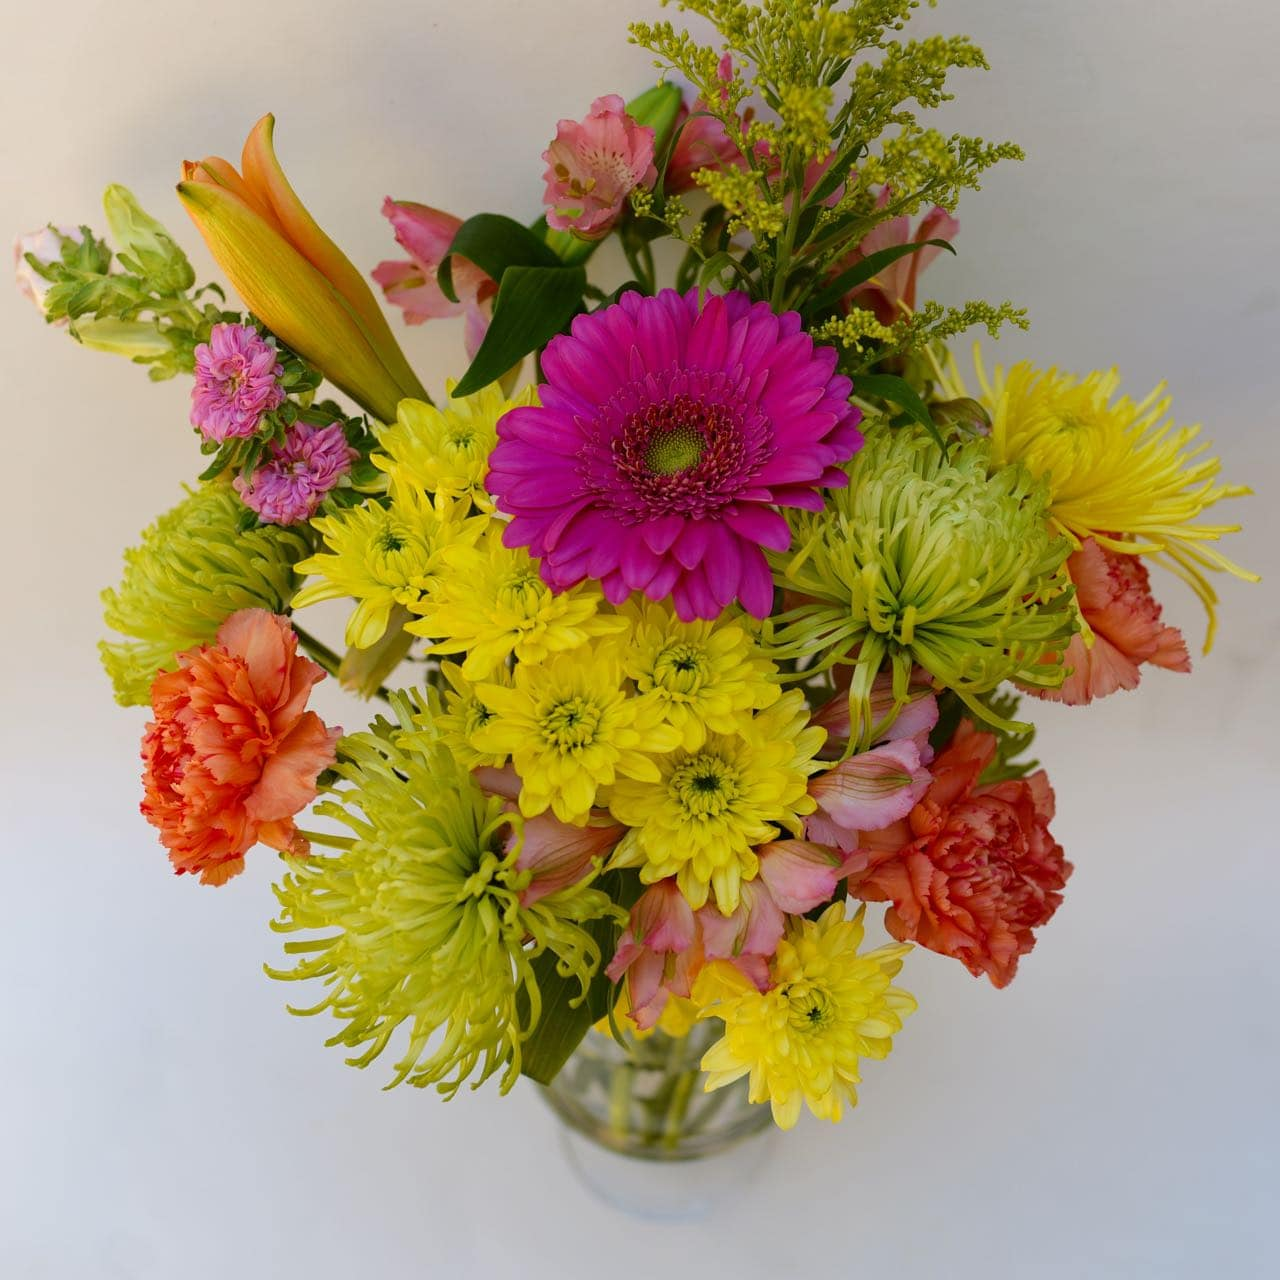 Grocery store flowers hack. How to make a flower arrangement from grocery store flowers!